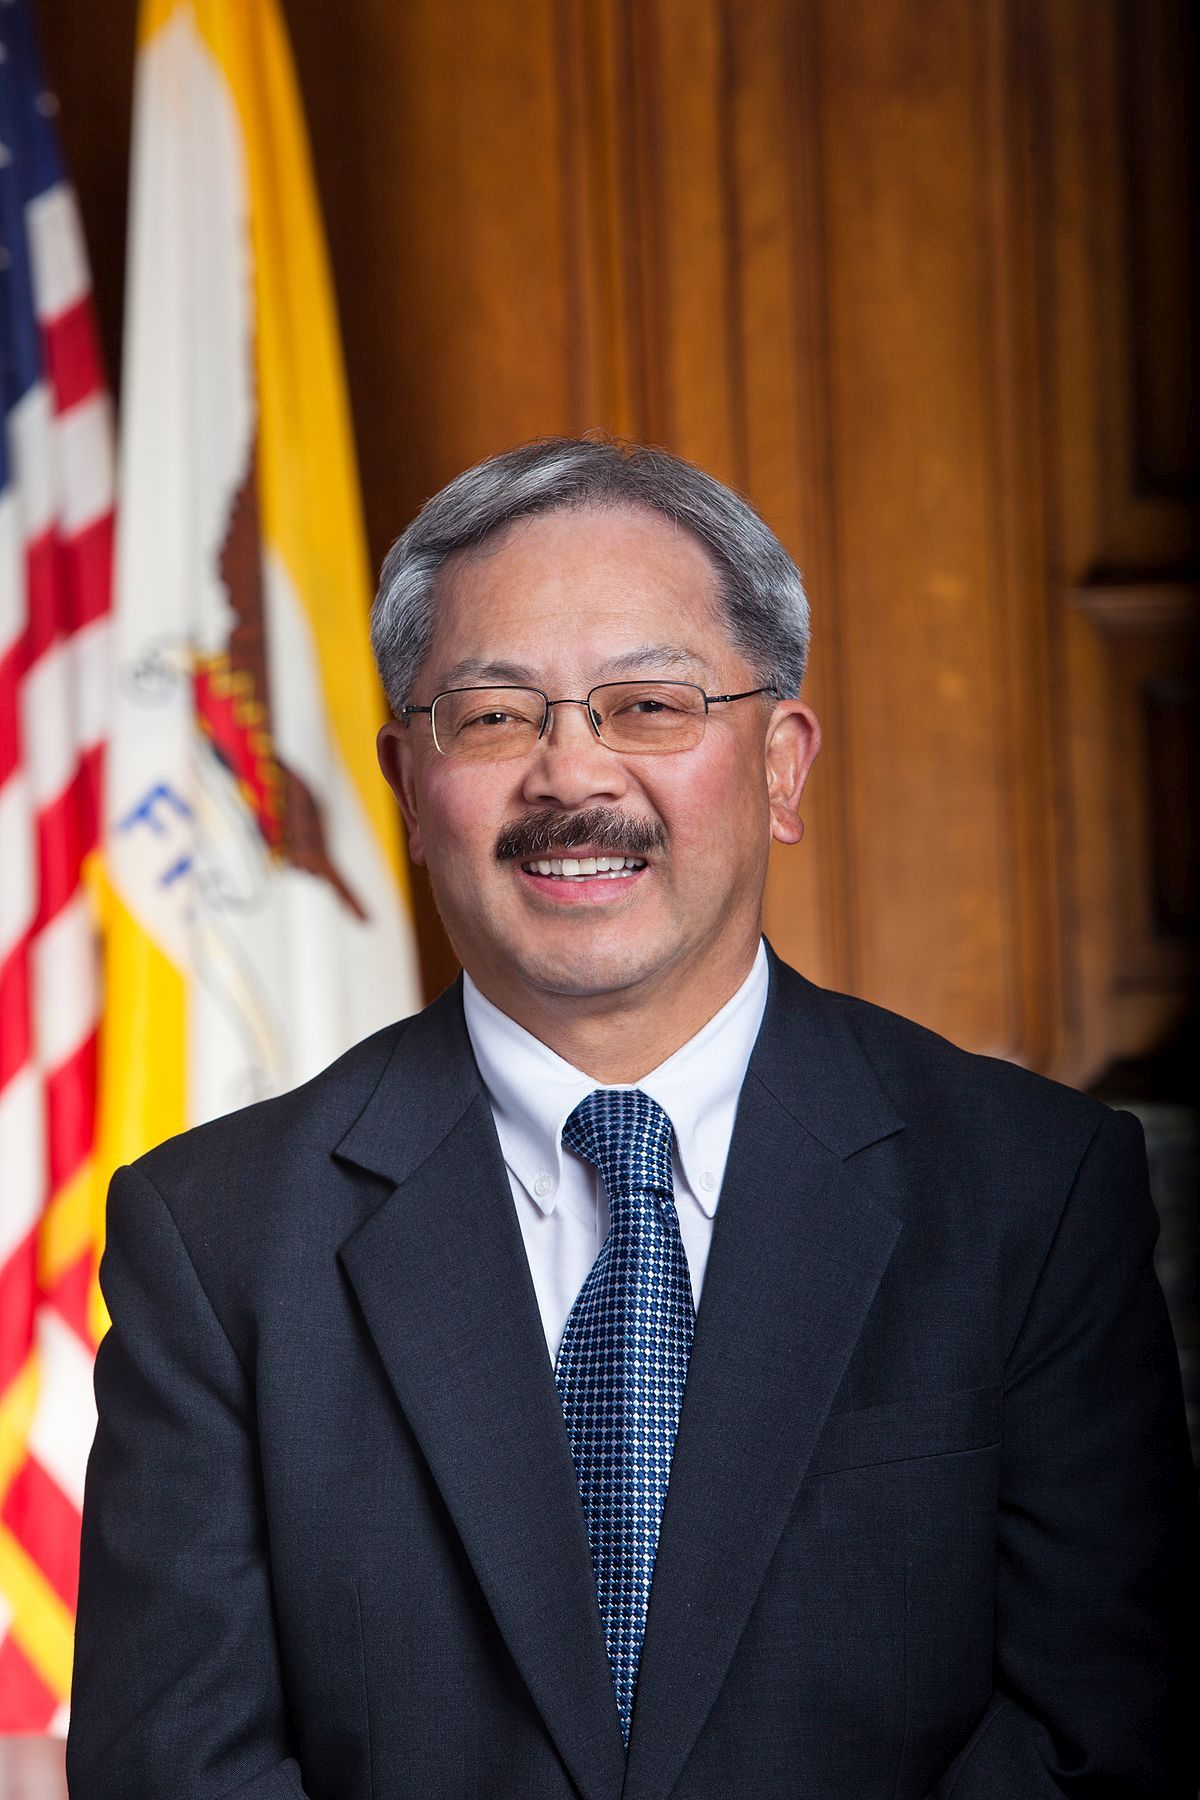 The Mayor of San Francisco Ed Lee, Passed away from cardiac arrest